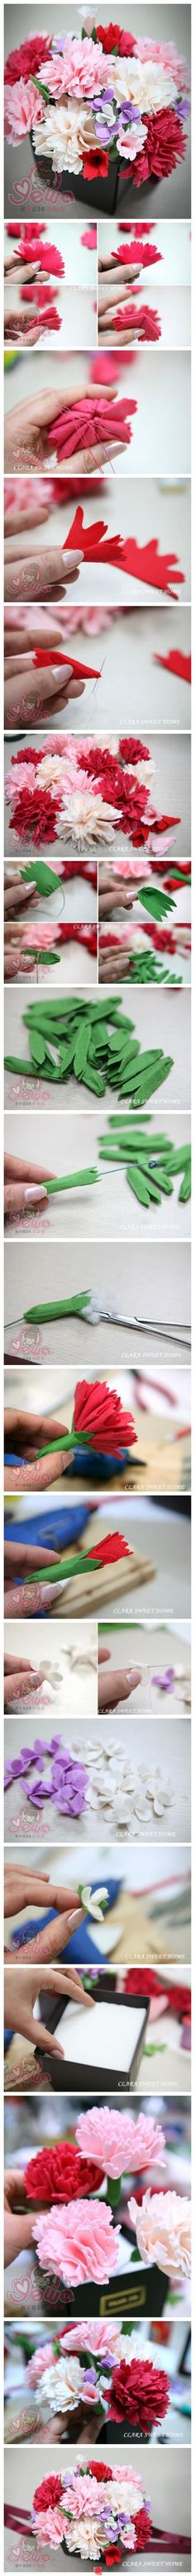 Felt Flowers ~ free felt tutorials. . . I'd like to try Foamie sheets and make…